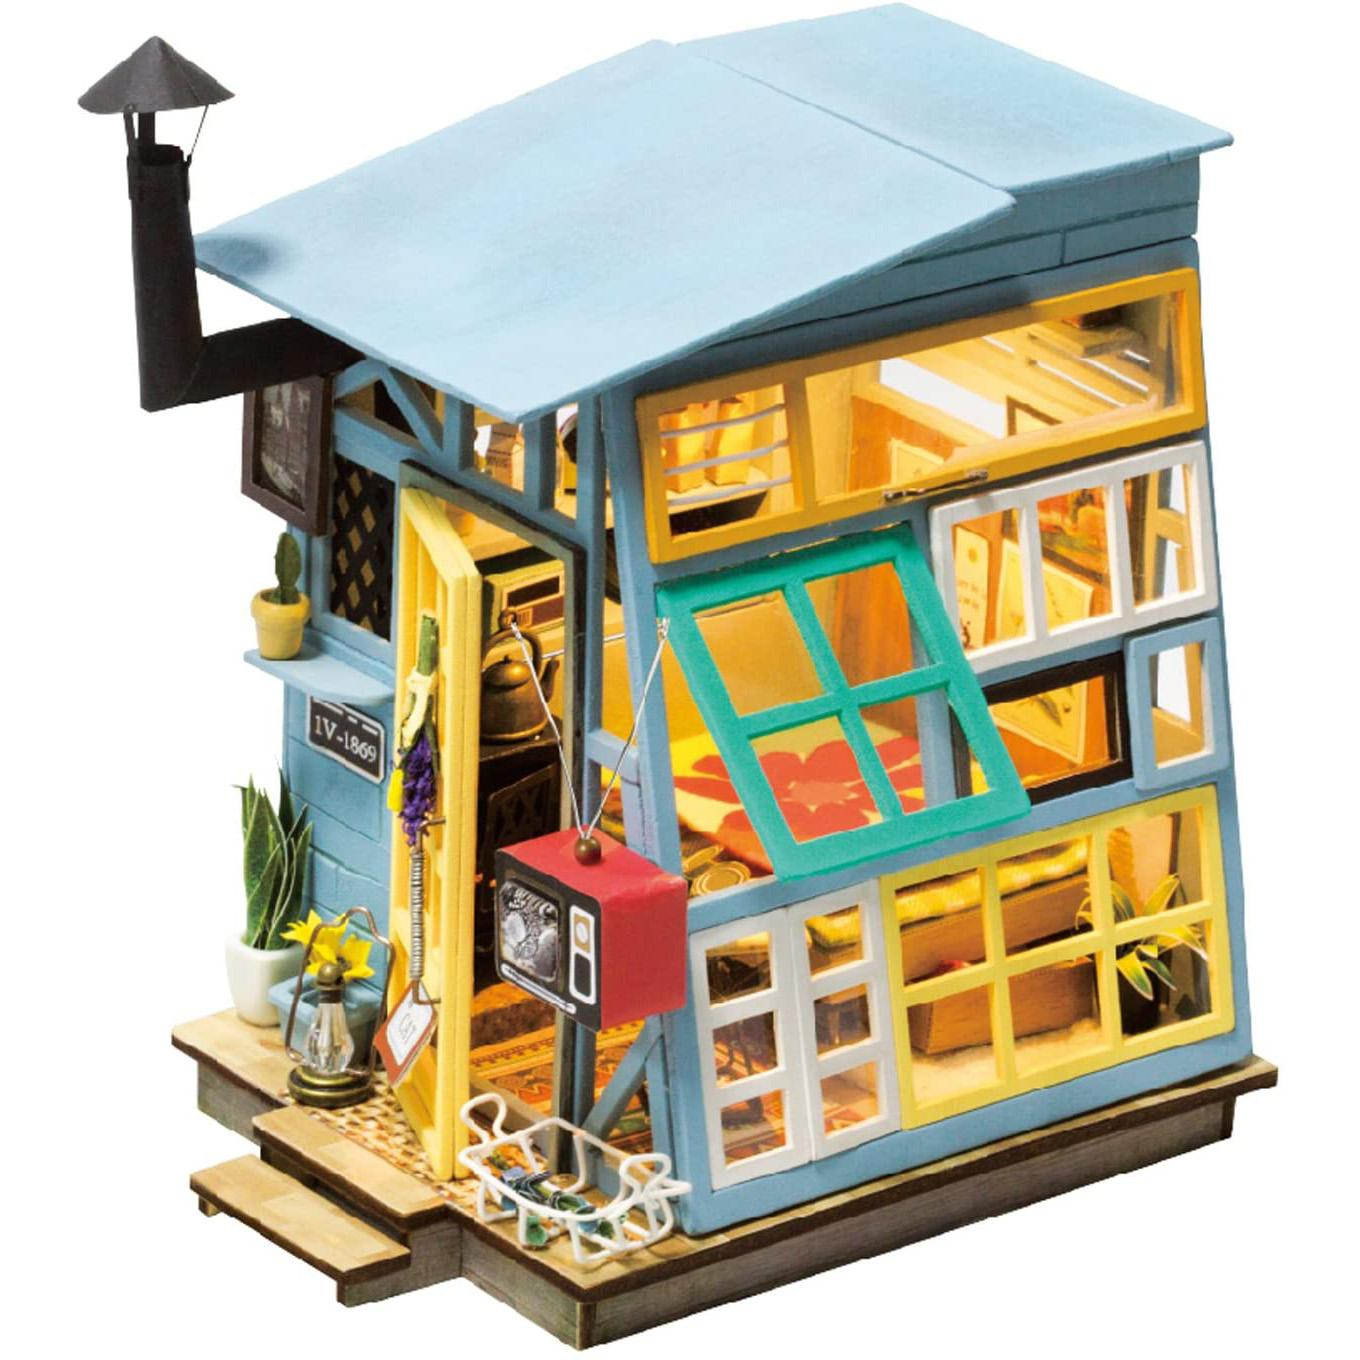 Robotime Balcony Daydreaming Miniature Doll House Kit for $15.59